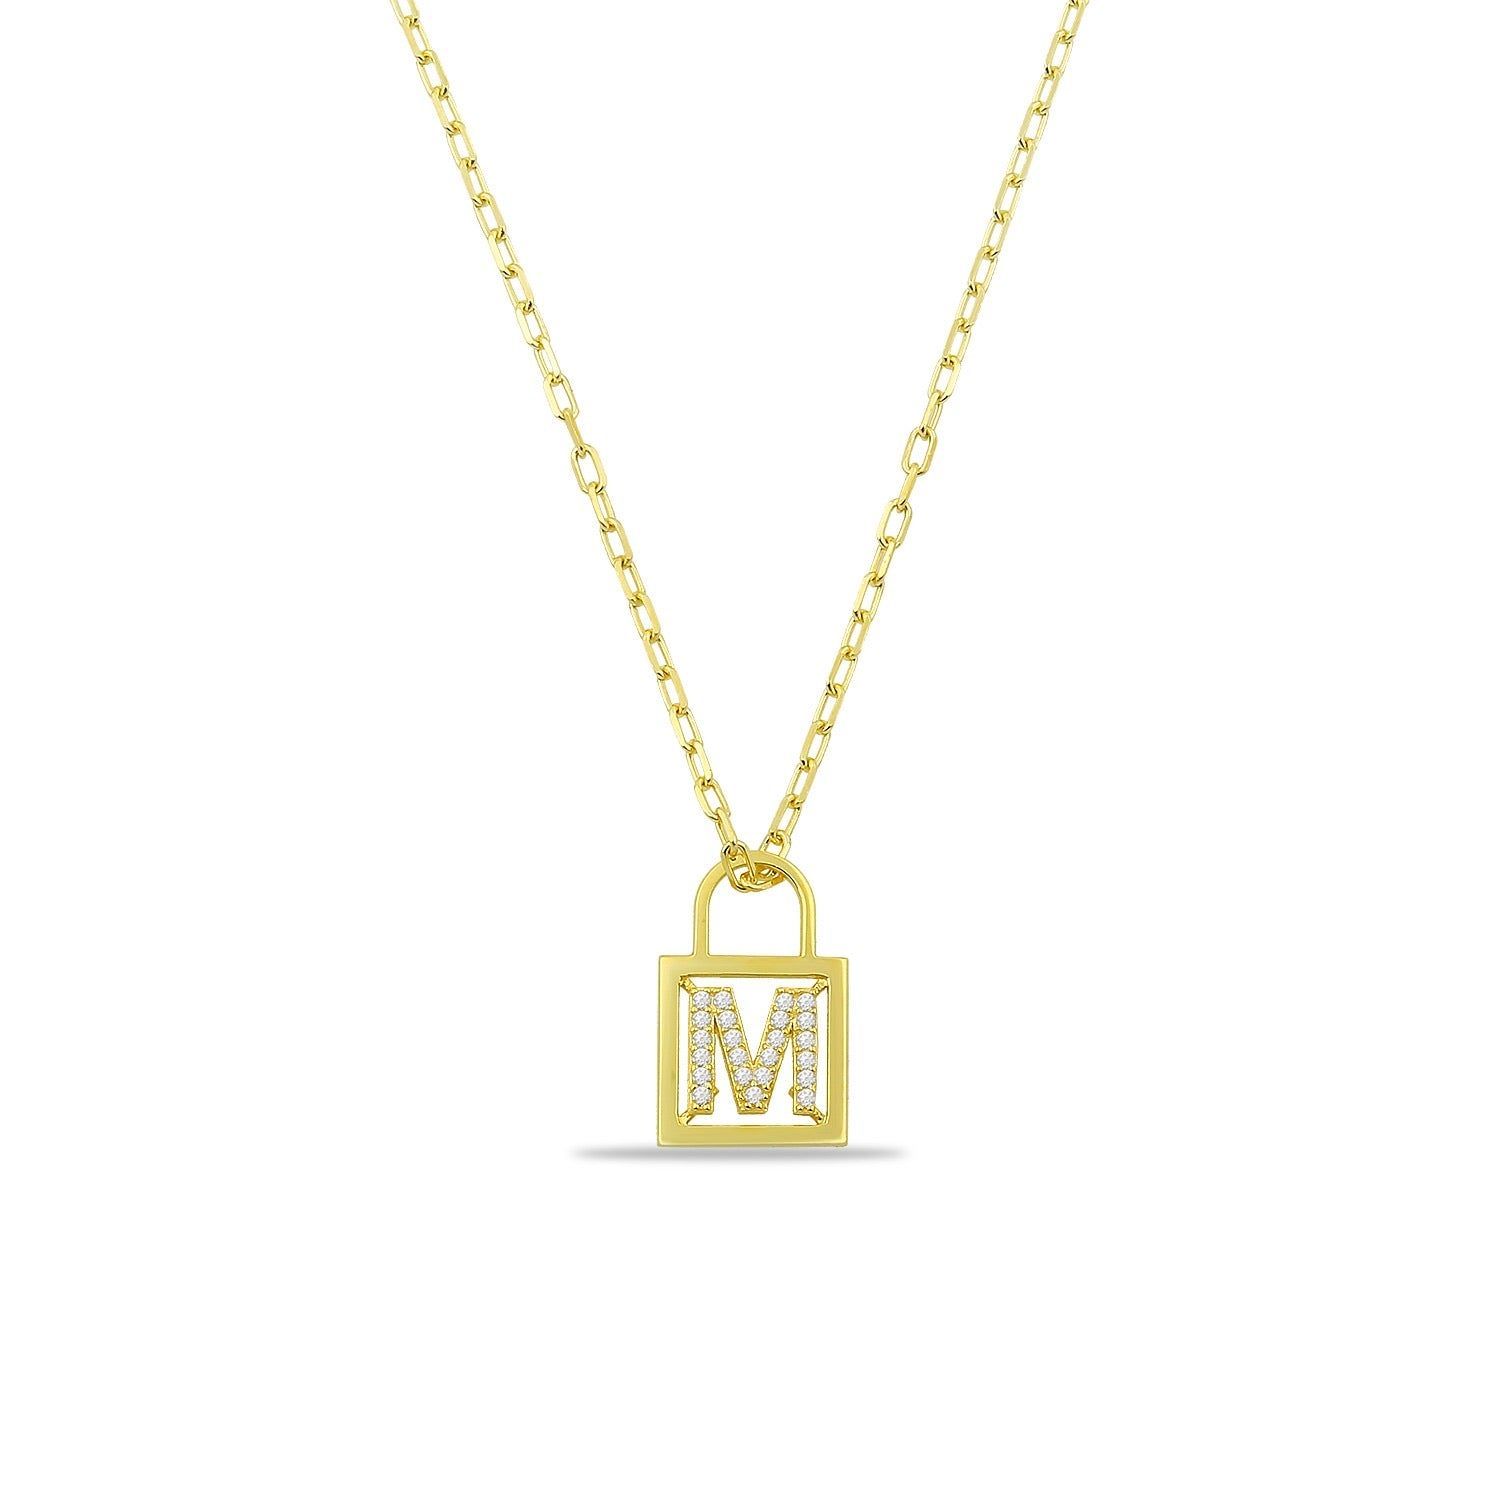 Initial CZ Lock Necklace